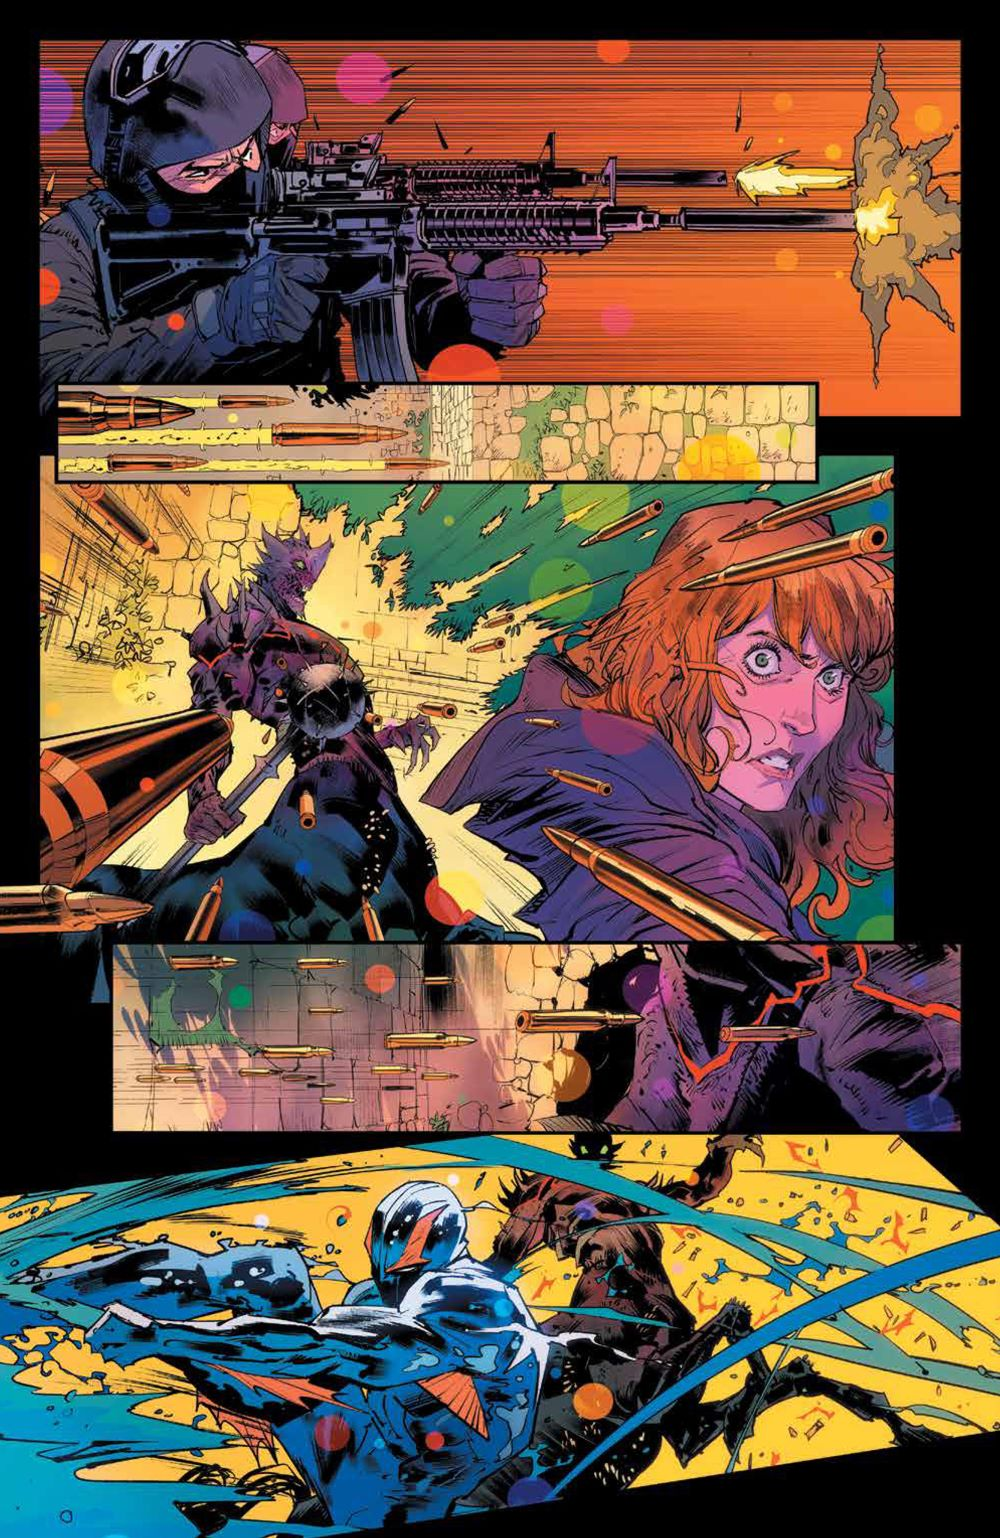 OnceFuture_017_PRESS_4 ComicList Previews: ONCE AND FUTURE #17